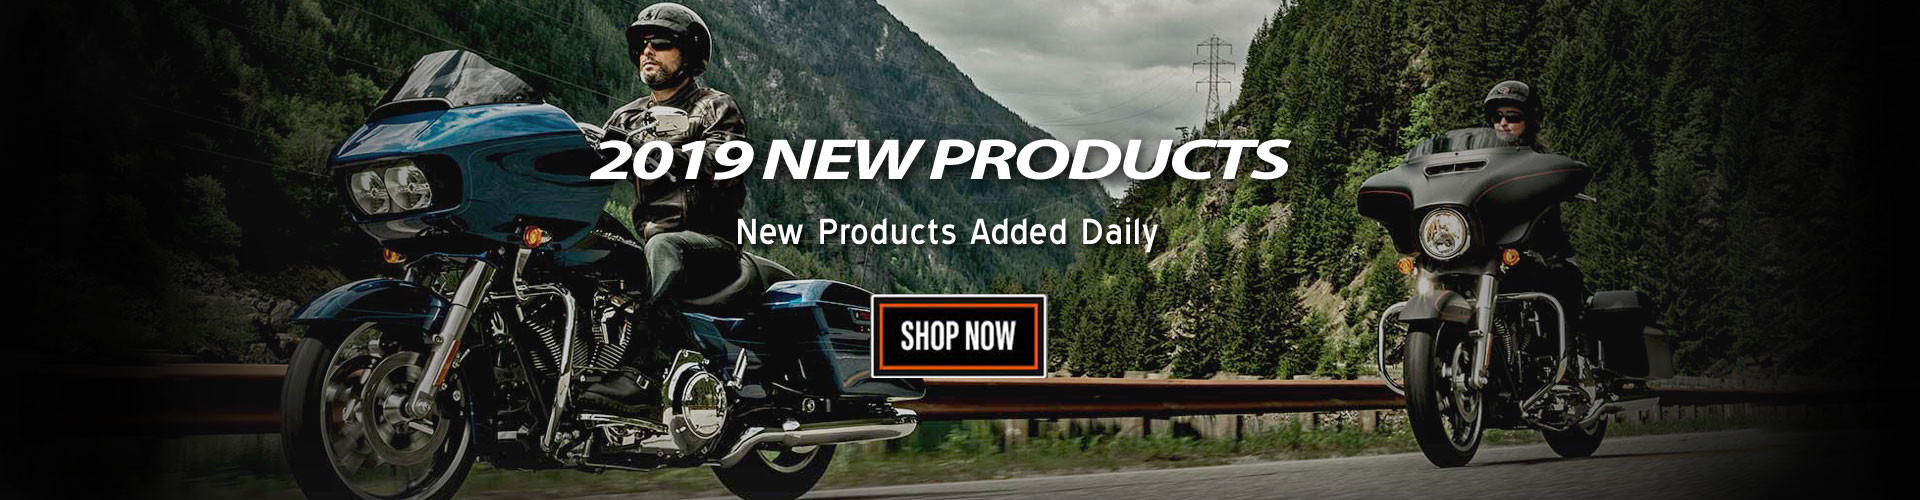 Harley-Davidson New Products